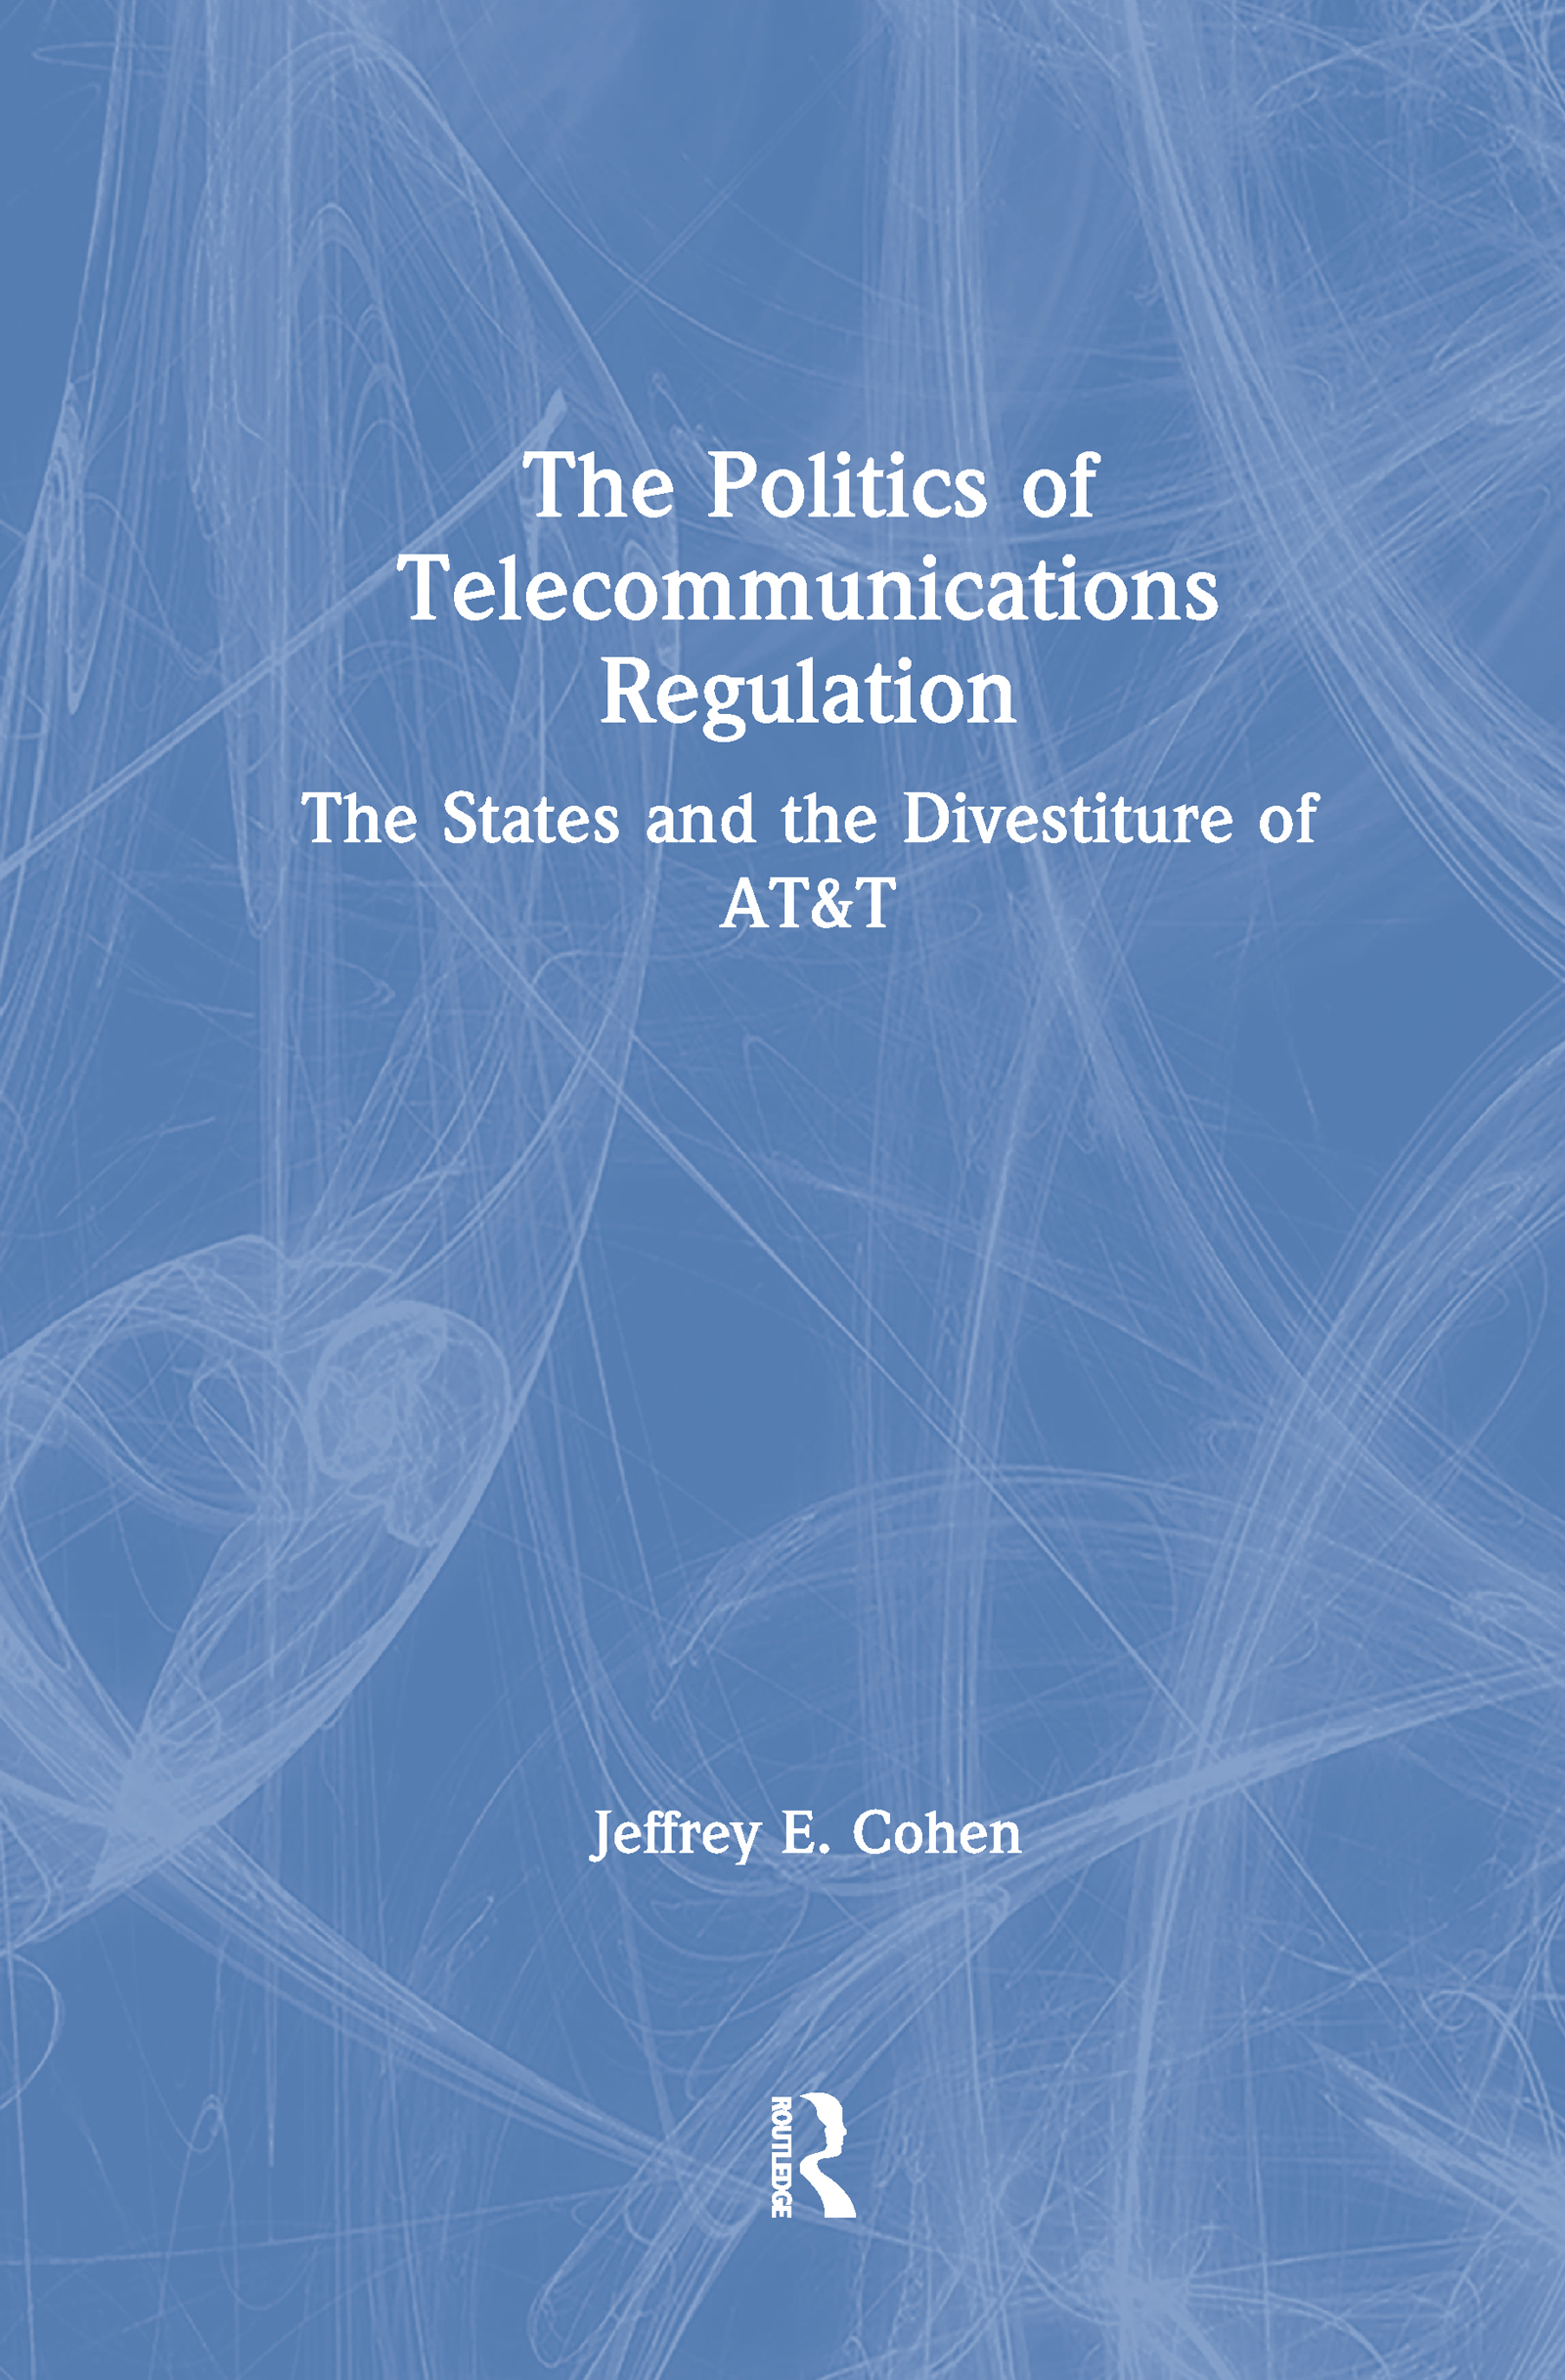 The Politics of Telecommunications Regulation: The States and the Divestiture of AT&T: The States and the Divestiture of AT&T, 1st Edition (Hardback) book cover